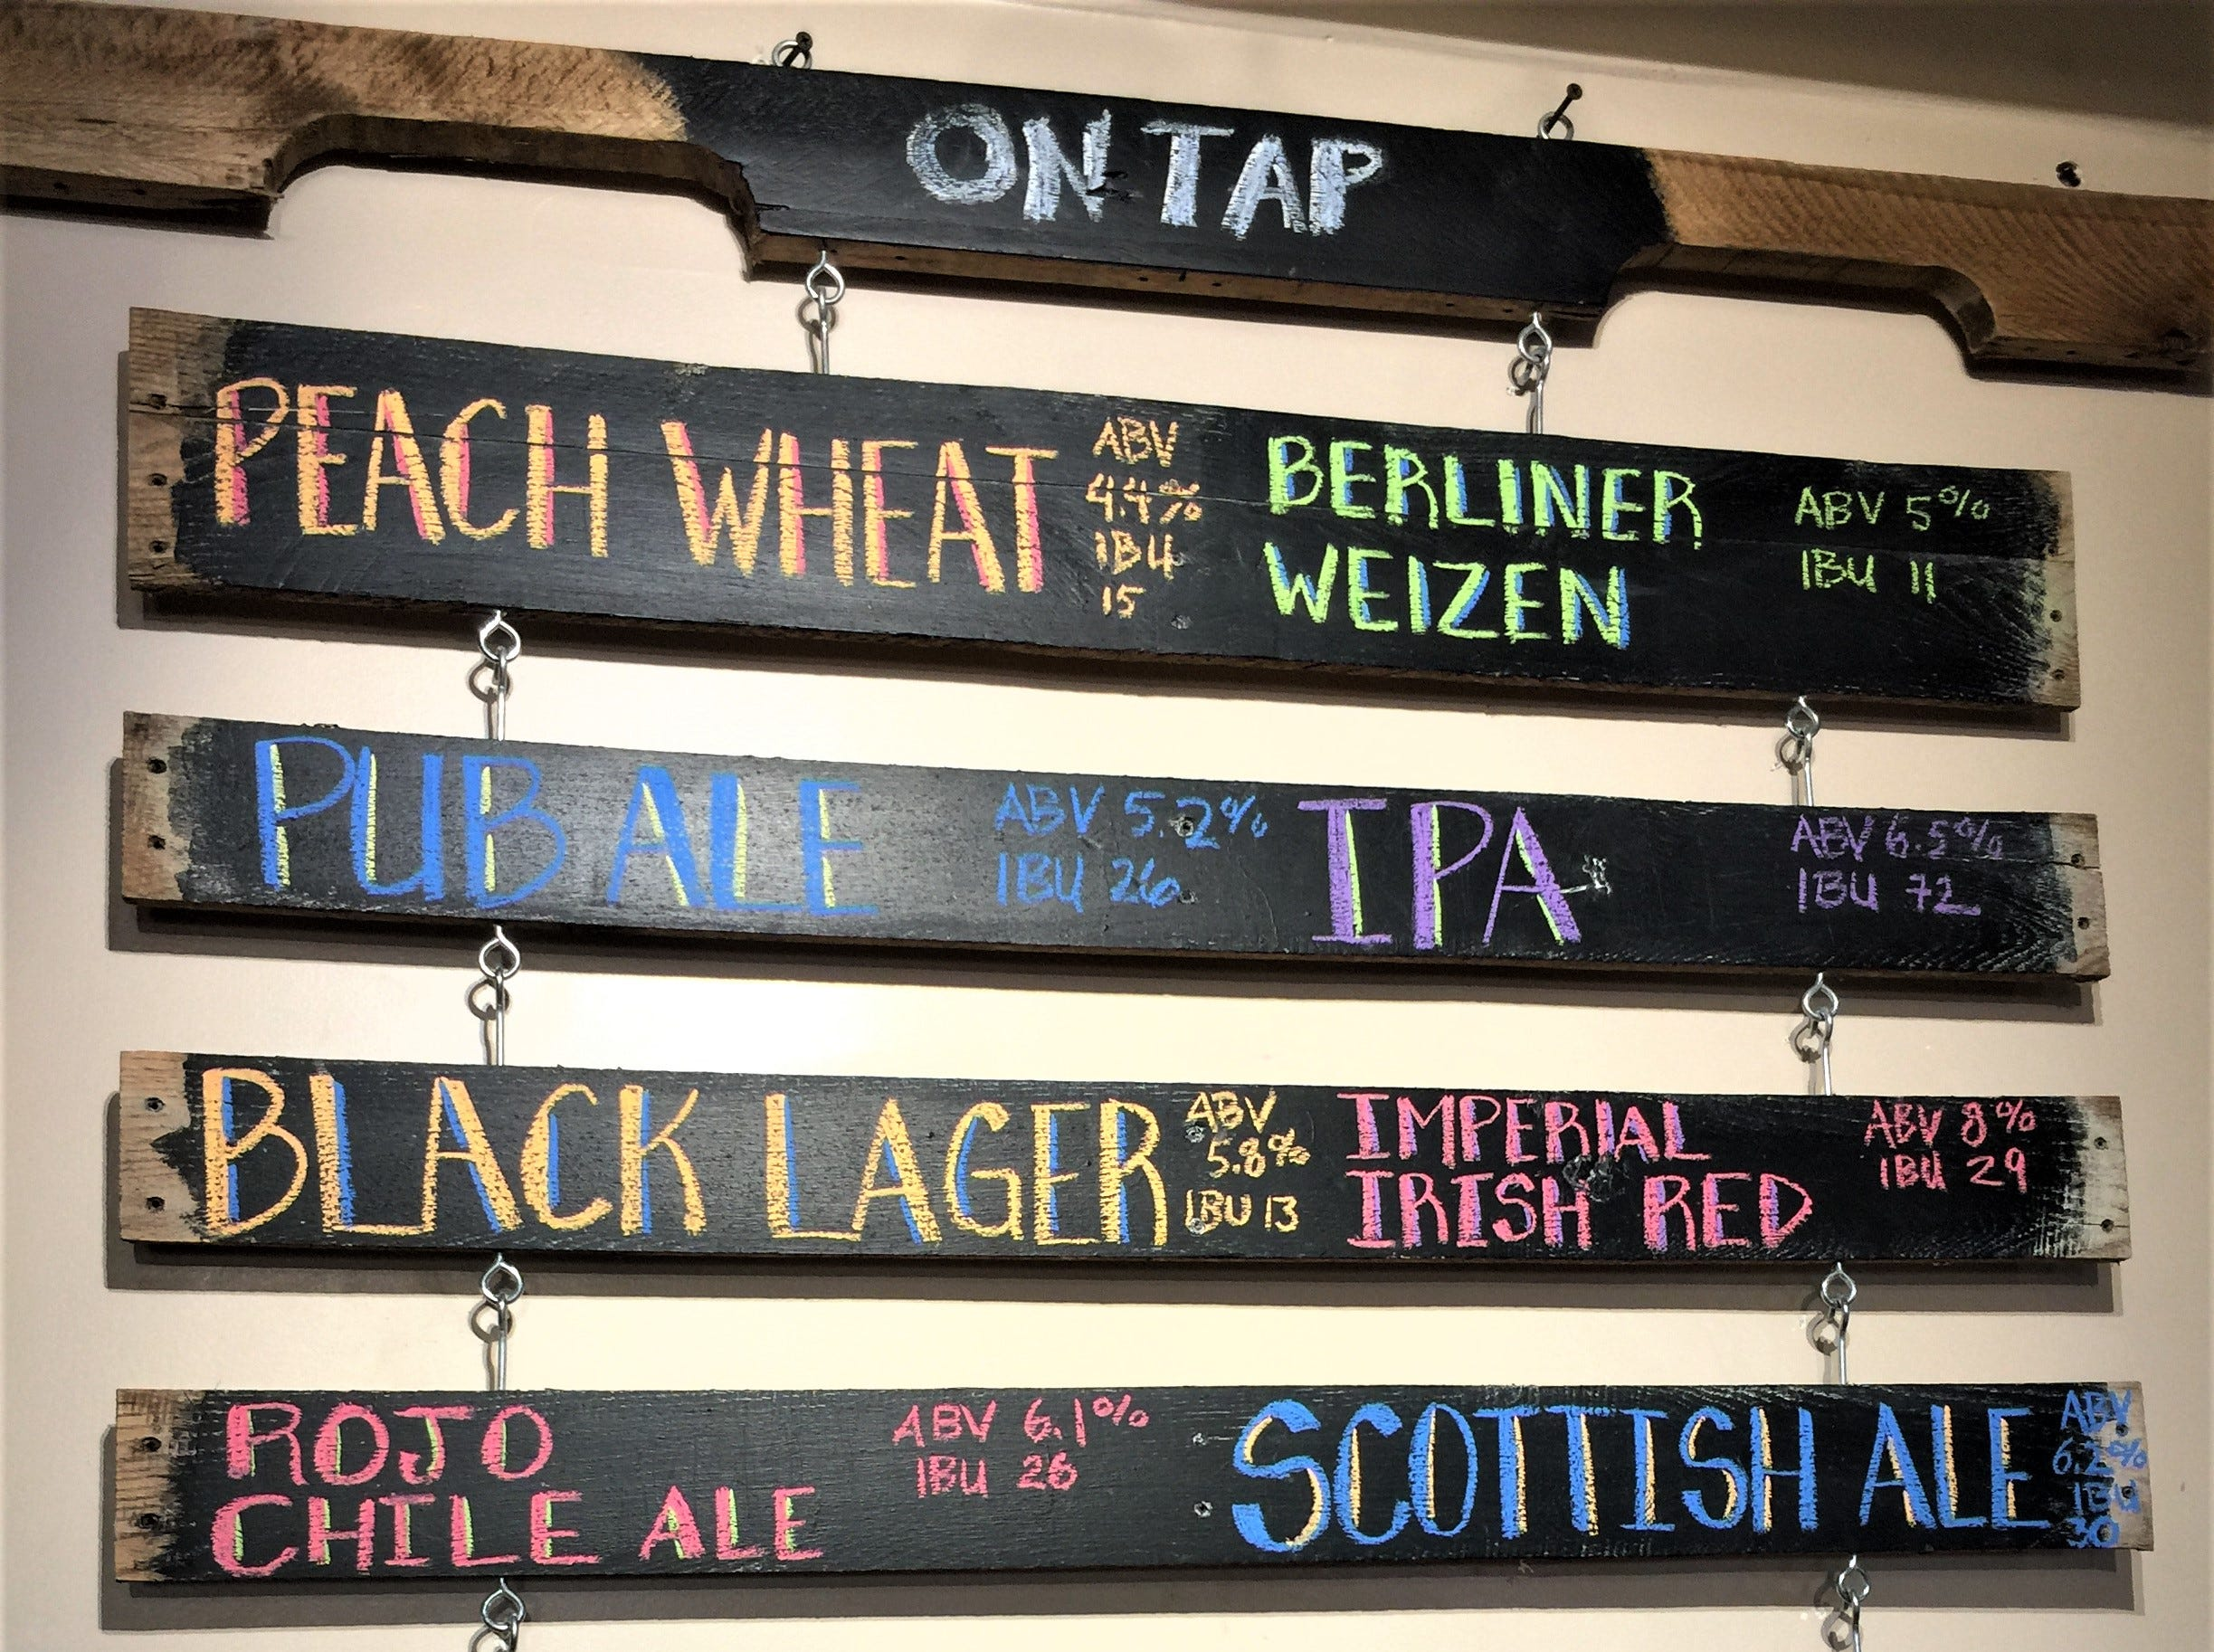 High Desert Brewing Co. serves 27 different beers including fan favorites Peach Wheat, a Berliner Weizen, Rojo Chile Ale, a Scottish Ale and Oktoberfest, a barley wine.